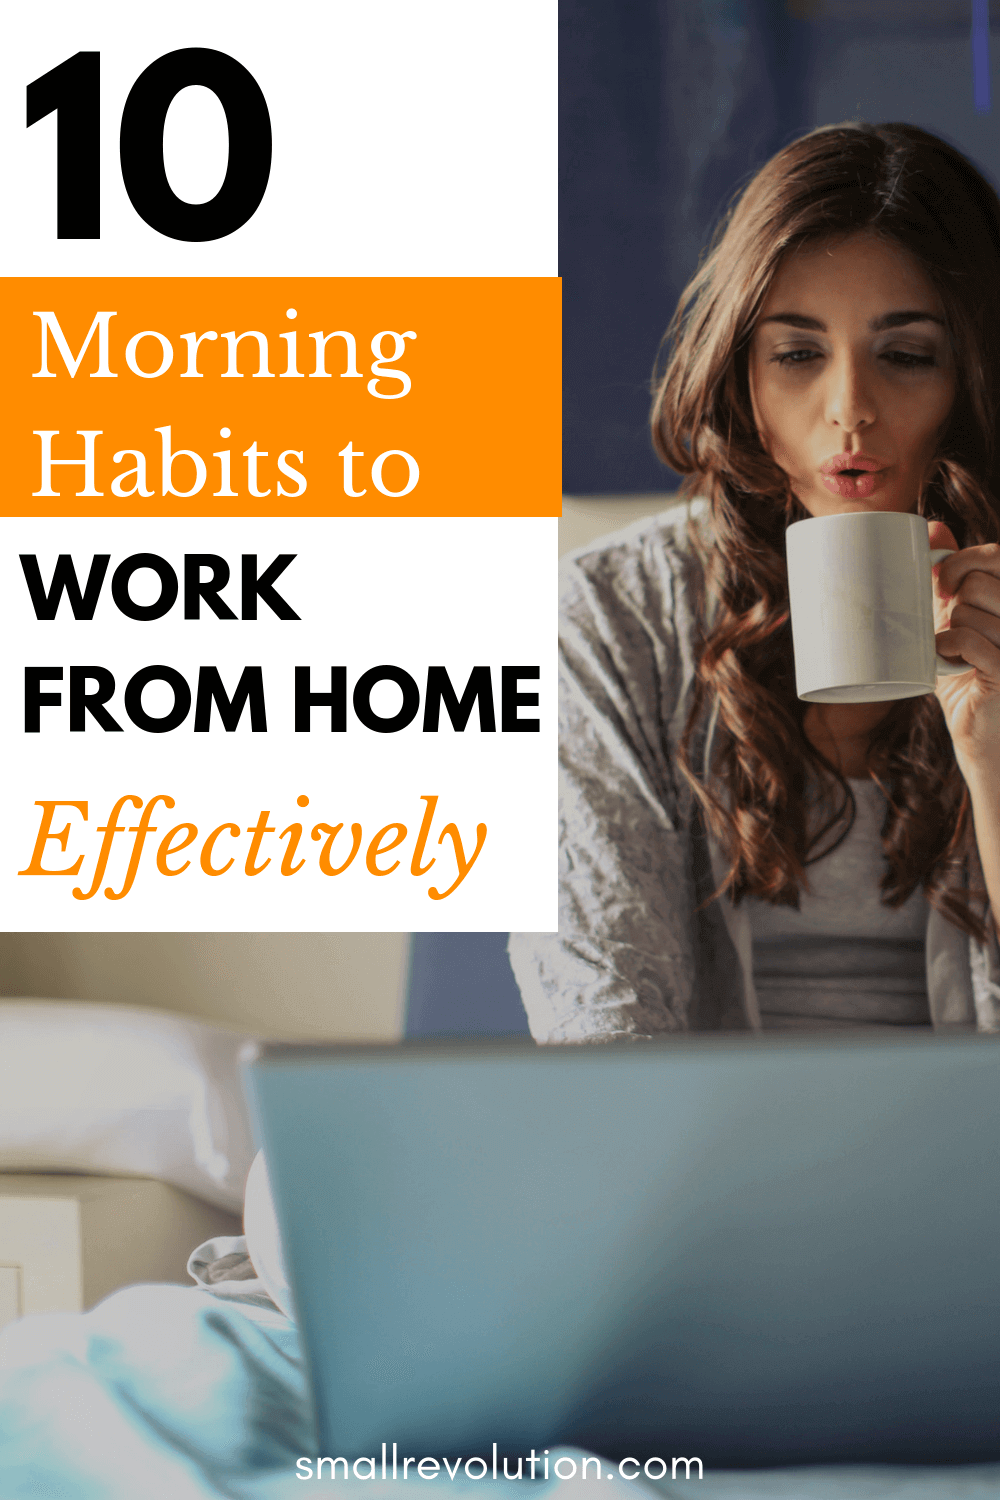 10 morning habits to work from home effectively